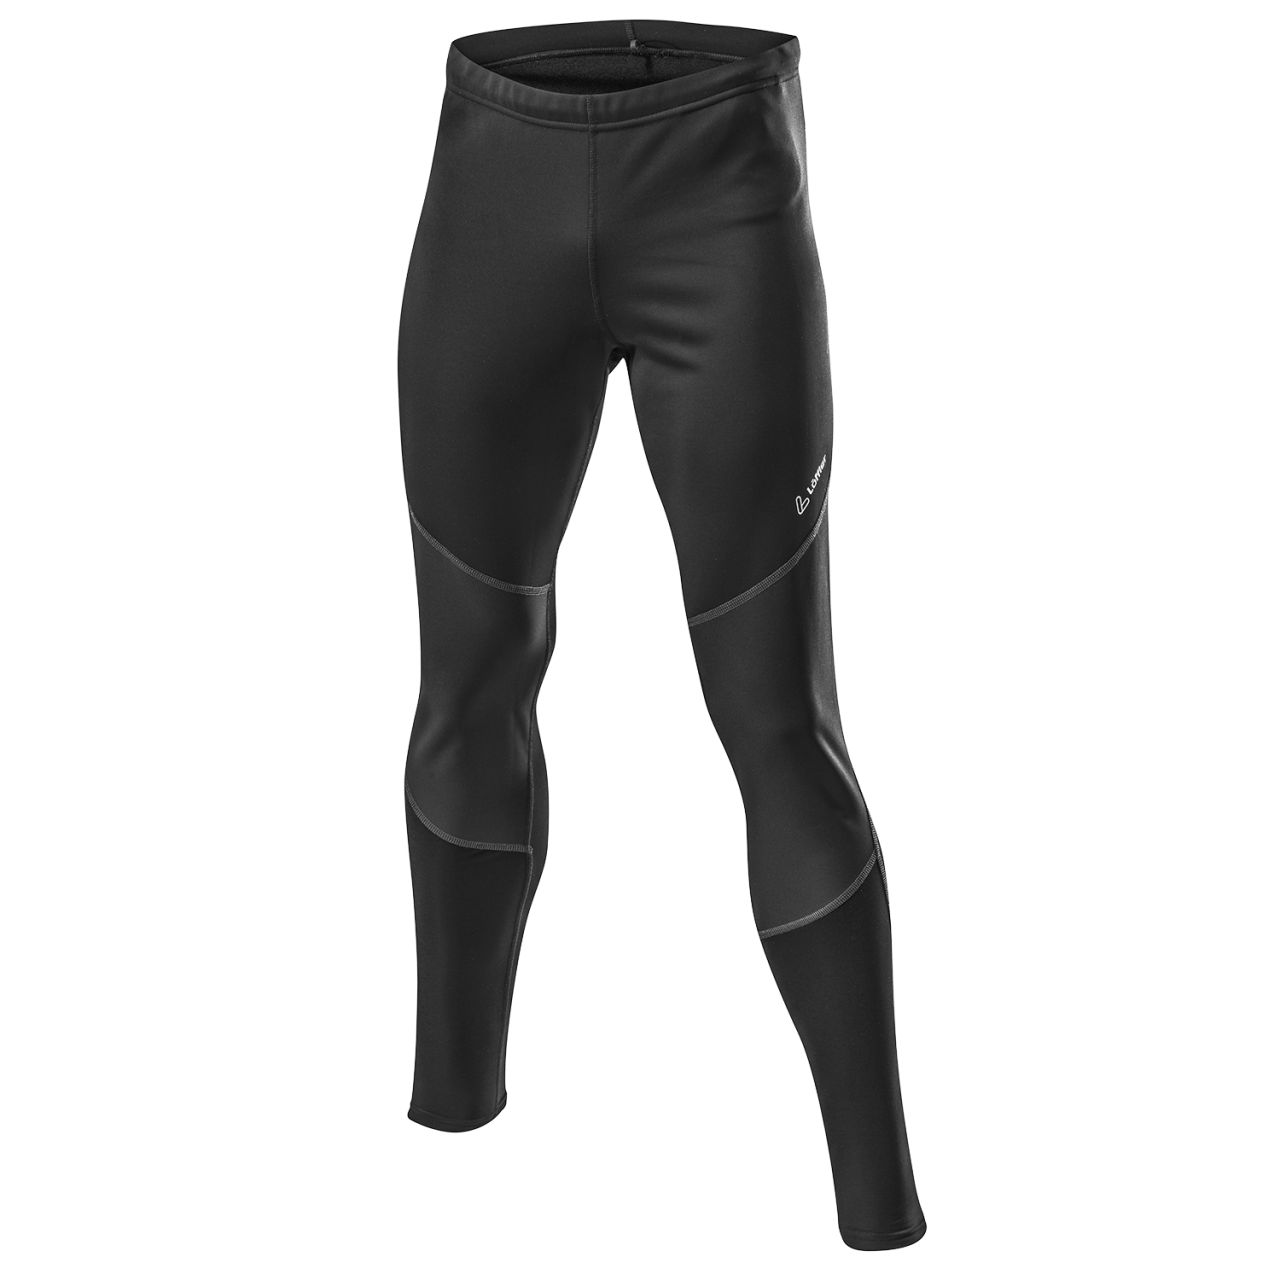 uploads leggings leggings PNG6 3